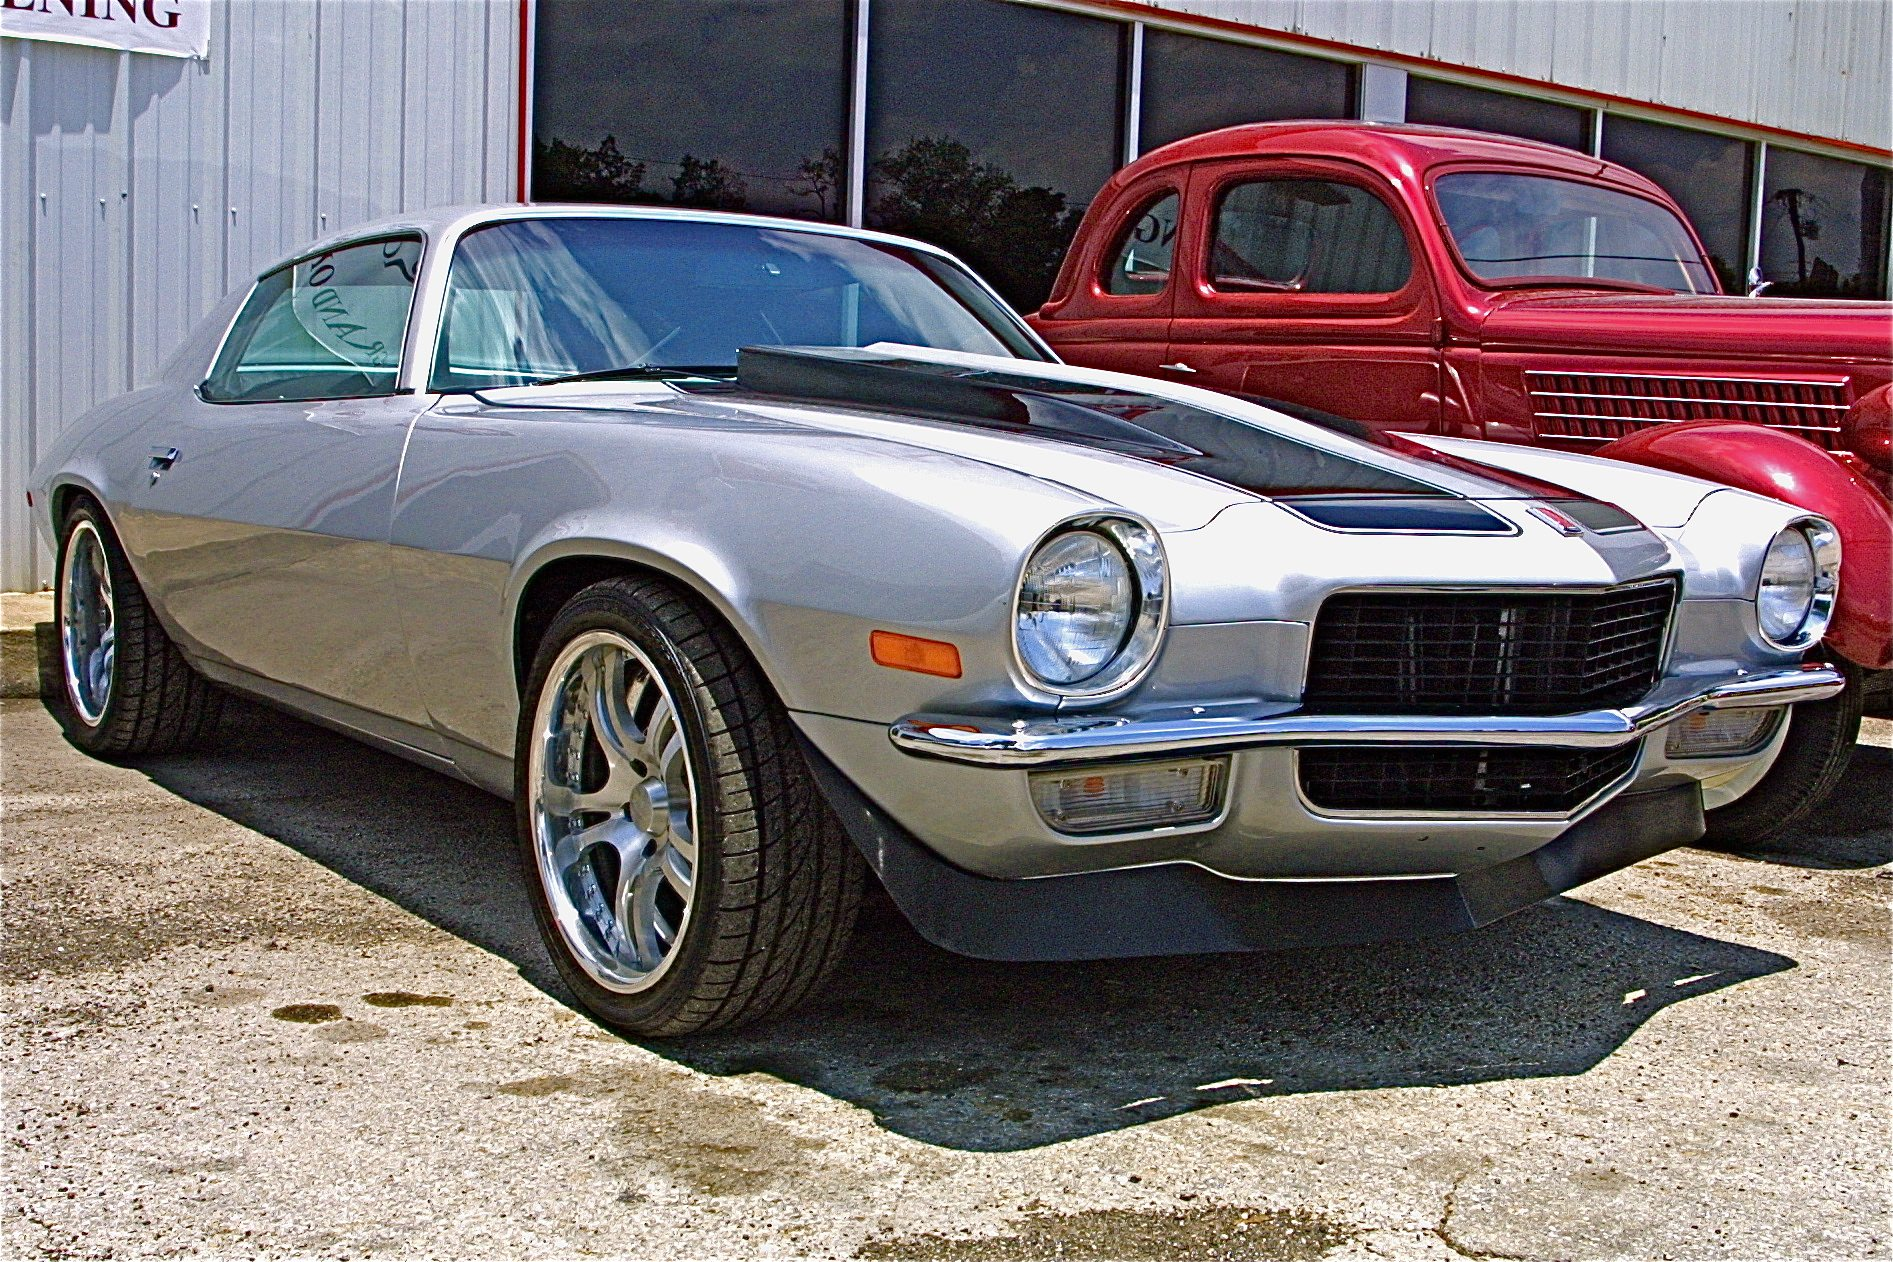 500 Hp 1972 Camaro Resto Mod For Sale At Motoreum In Nw